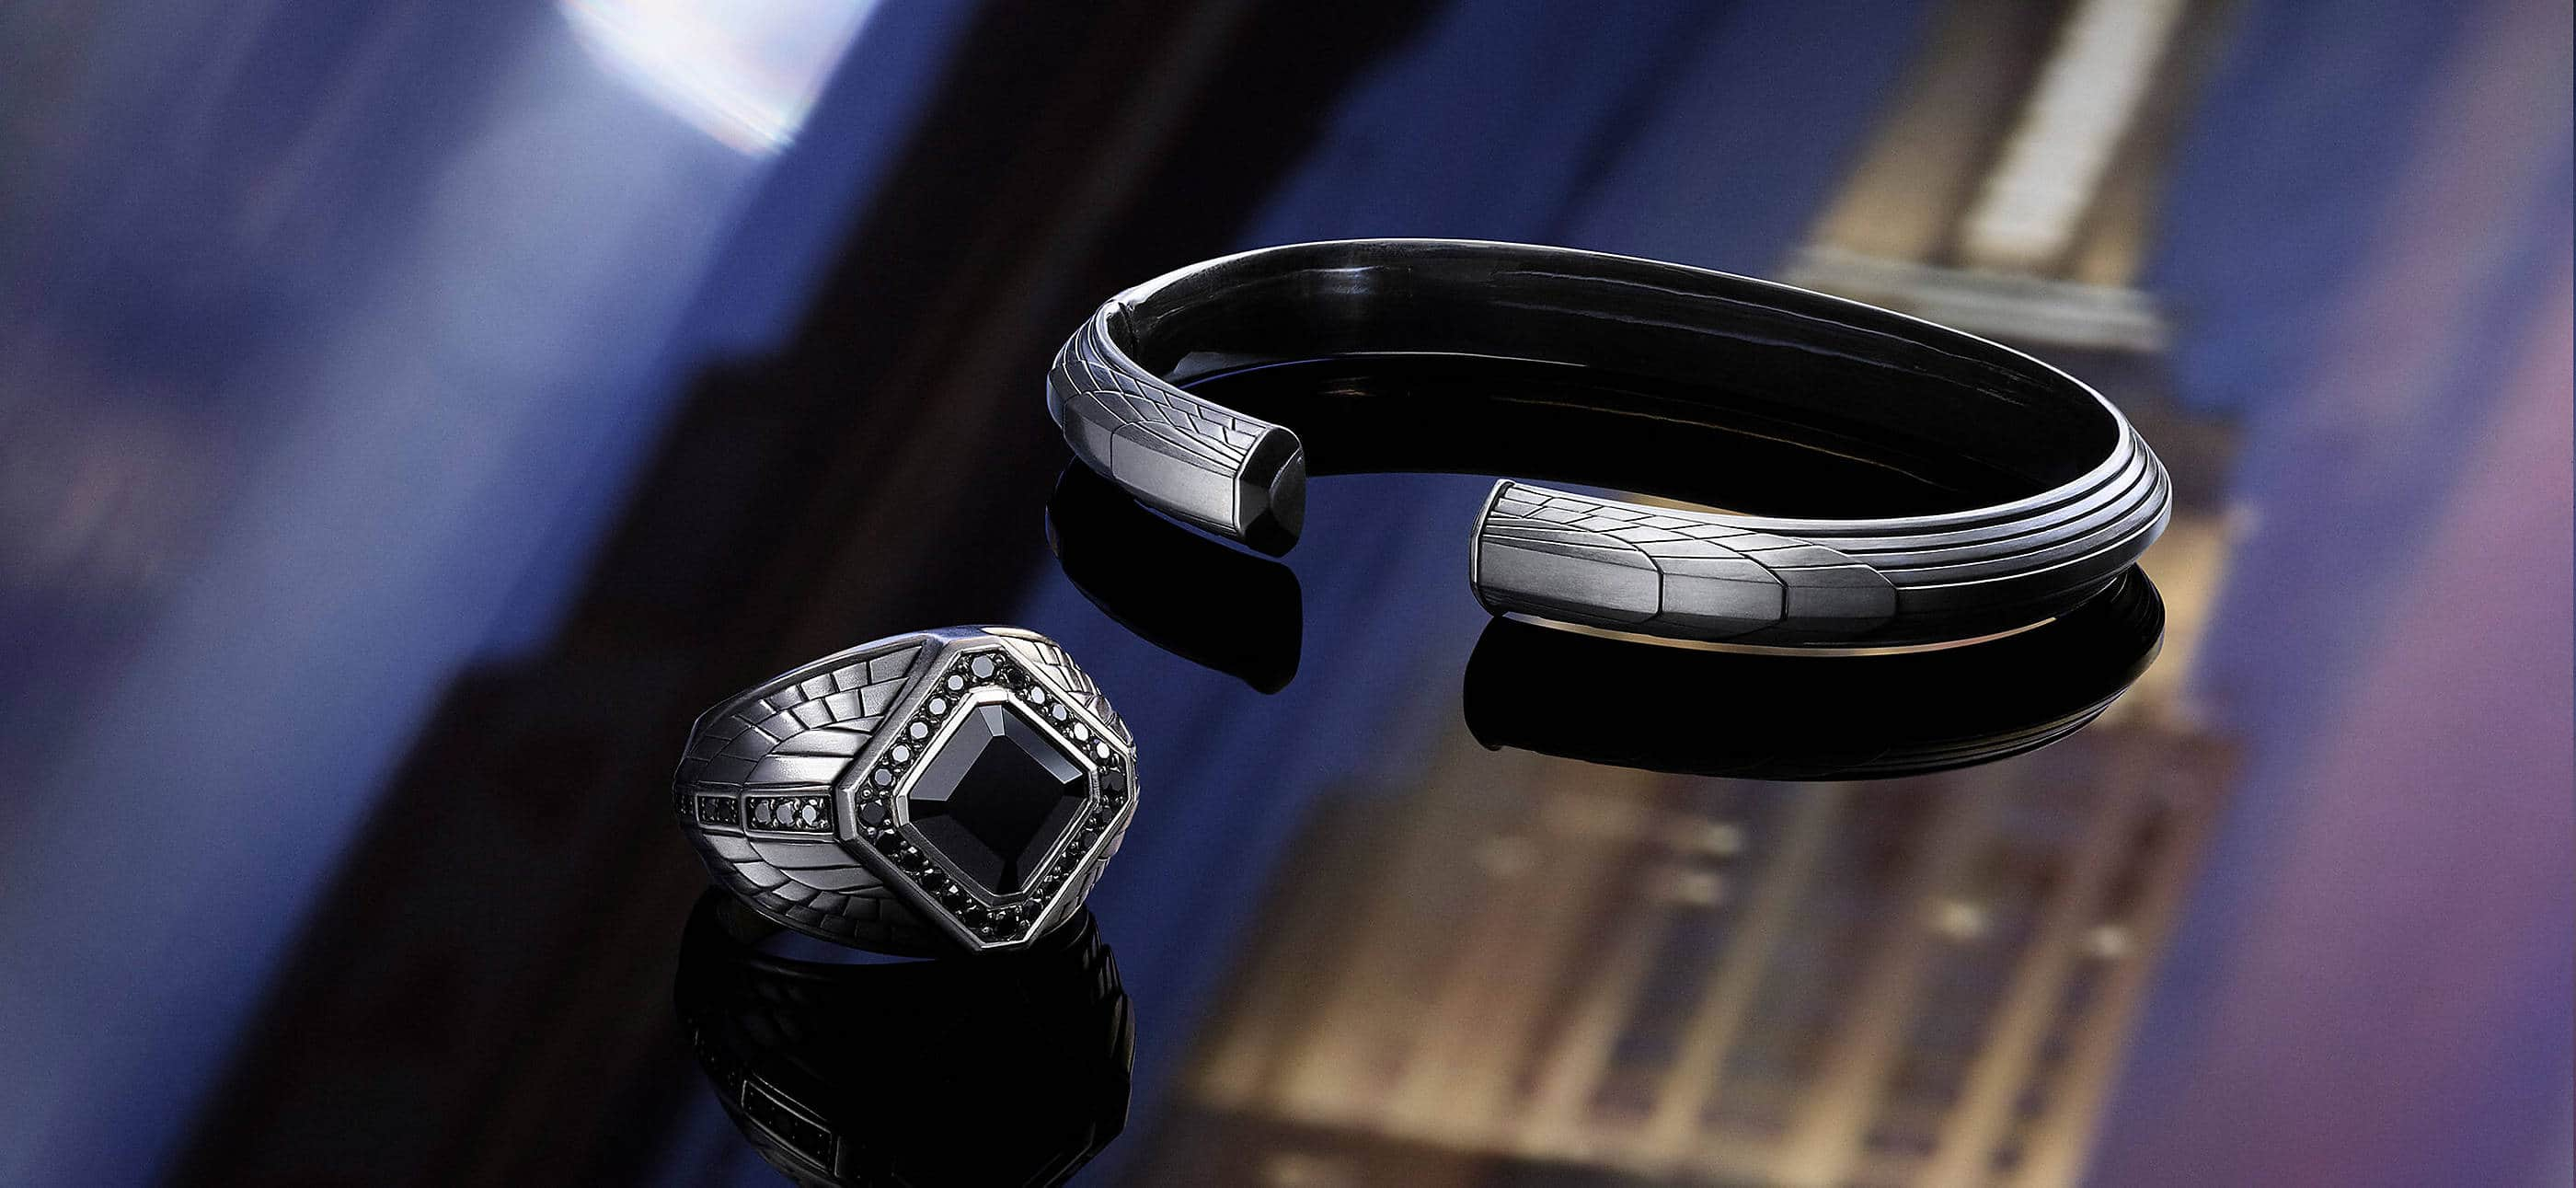 A color photo shows a David Yurman men's signet ring and cuff from the Empire Collection atop a dark surface with reflections of the Empire State Building. The jewelry is crafted from sterling silver with or without black onyx.